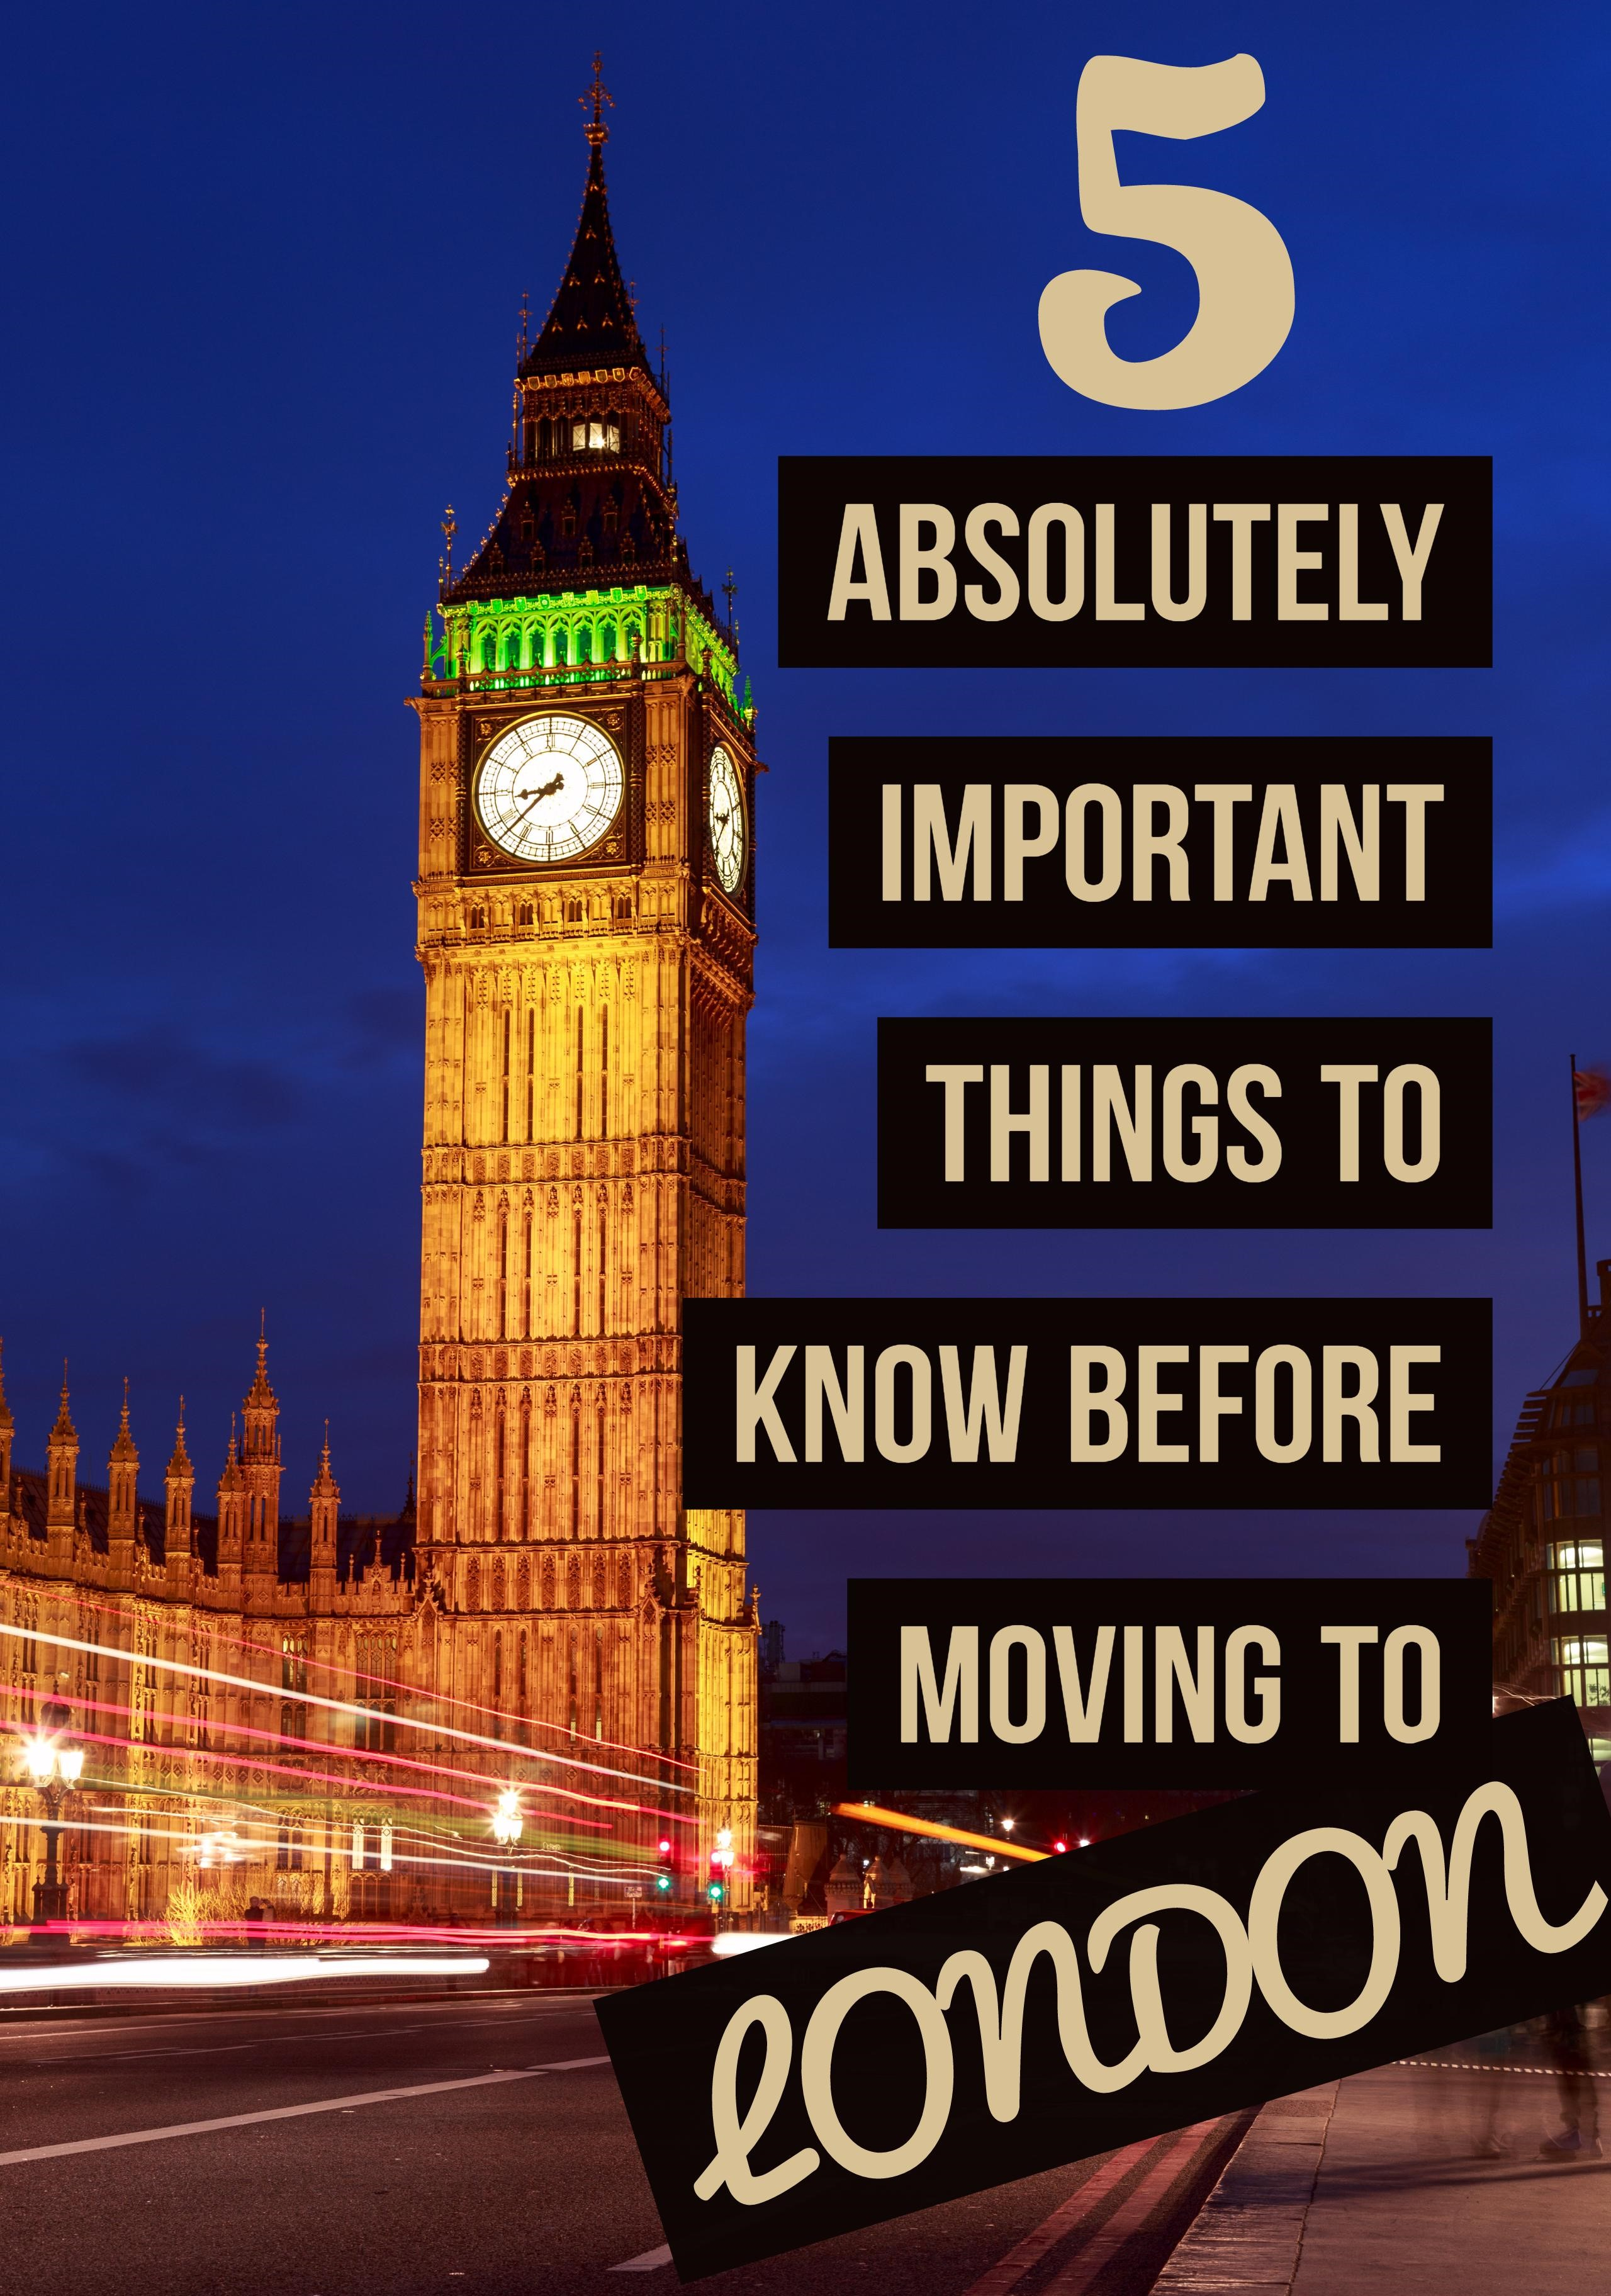 Things to know before moving to London